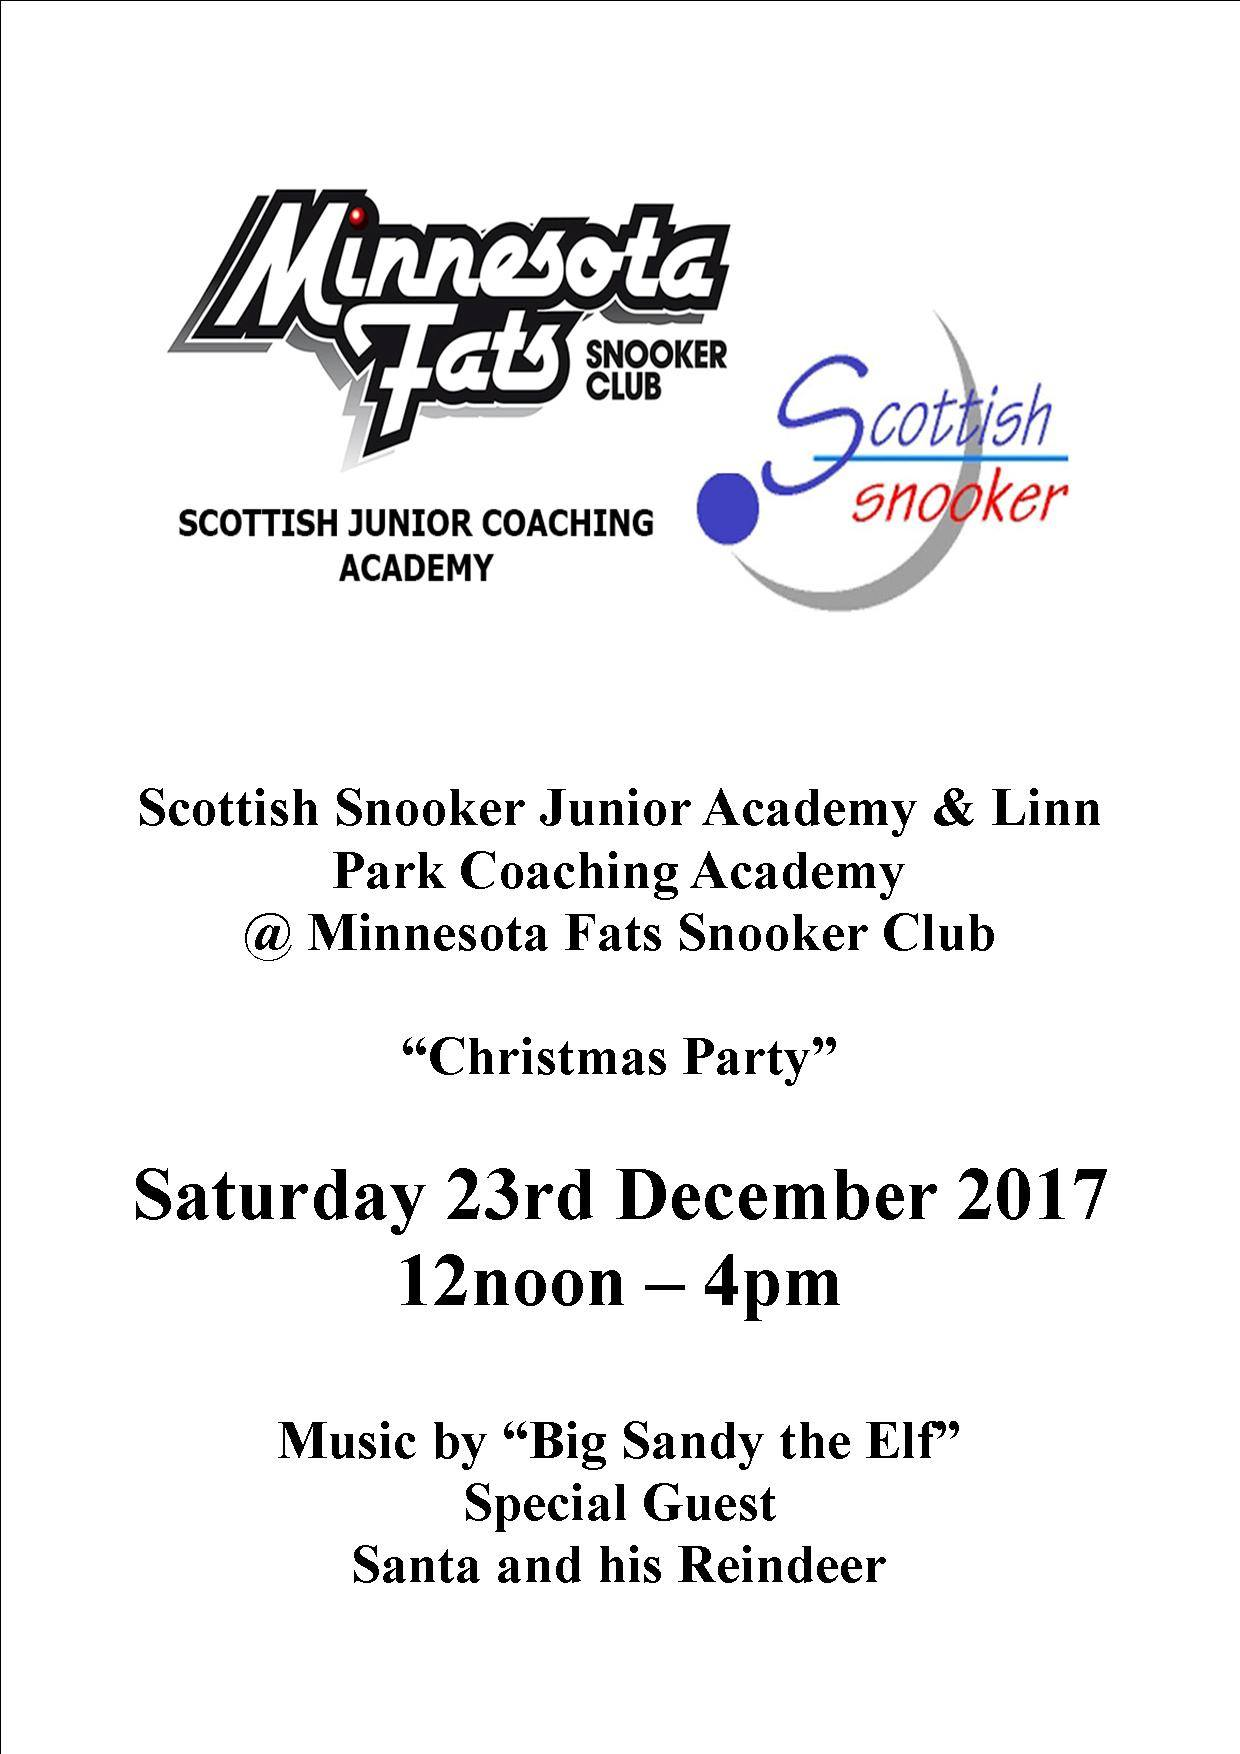 Scottish Junior Snooker Academy - Christmas Party - Saturday 23rd December 2017